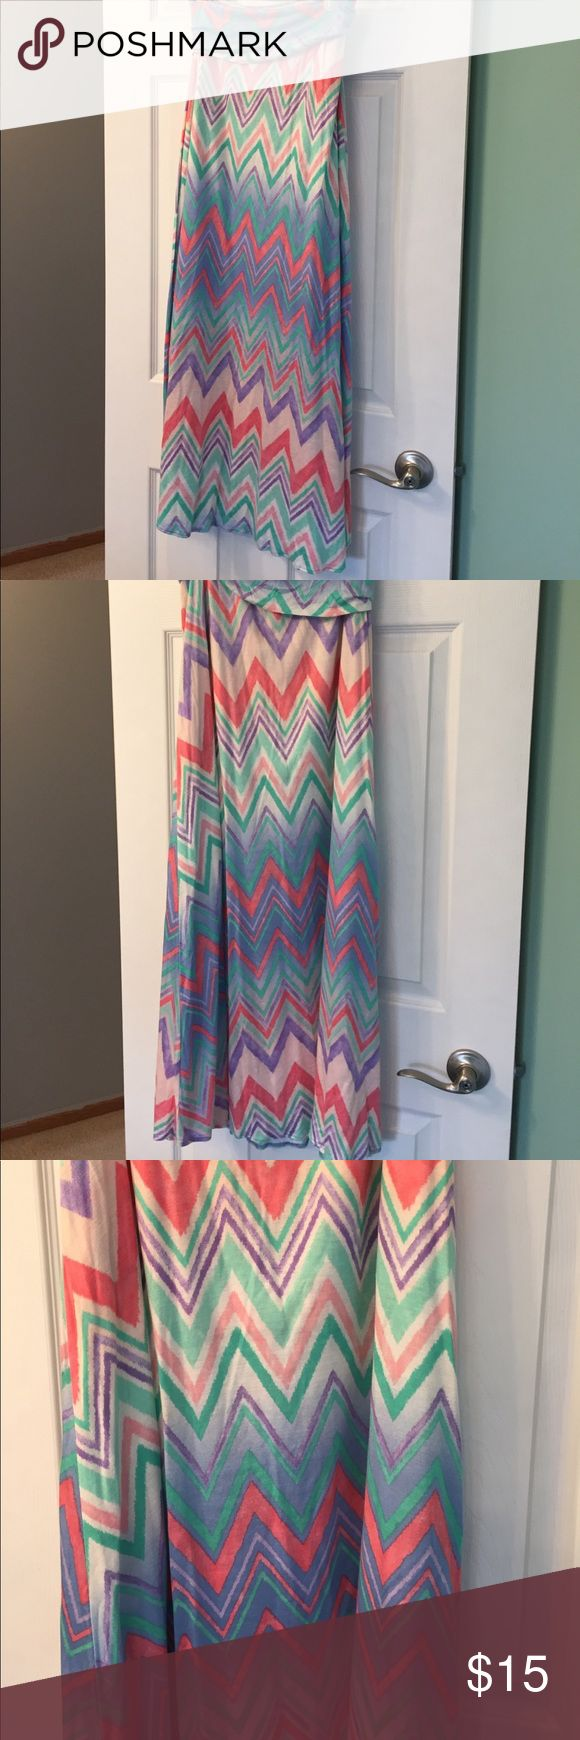 Chevron maxi skirt size medium Super soft and comfortable! Only wore a few times final touch Skirts Maxi